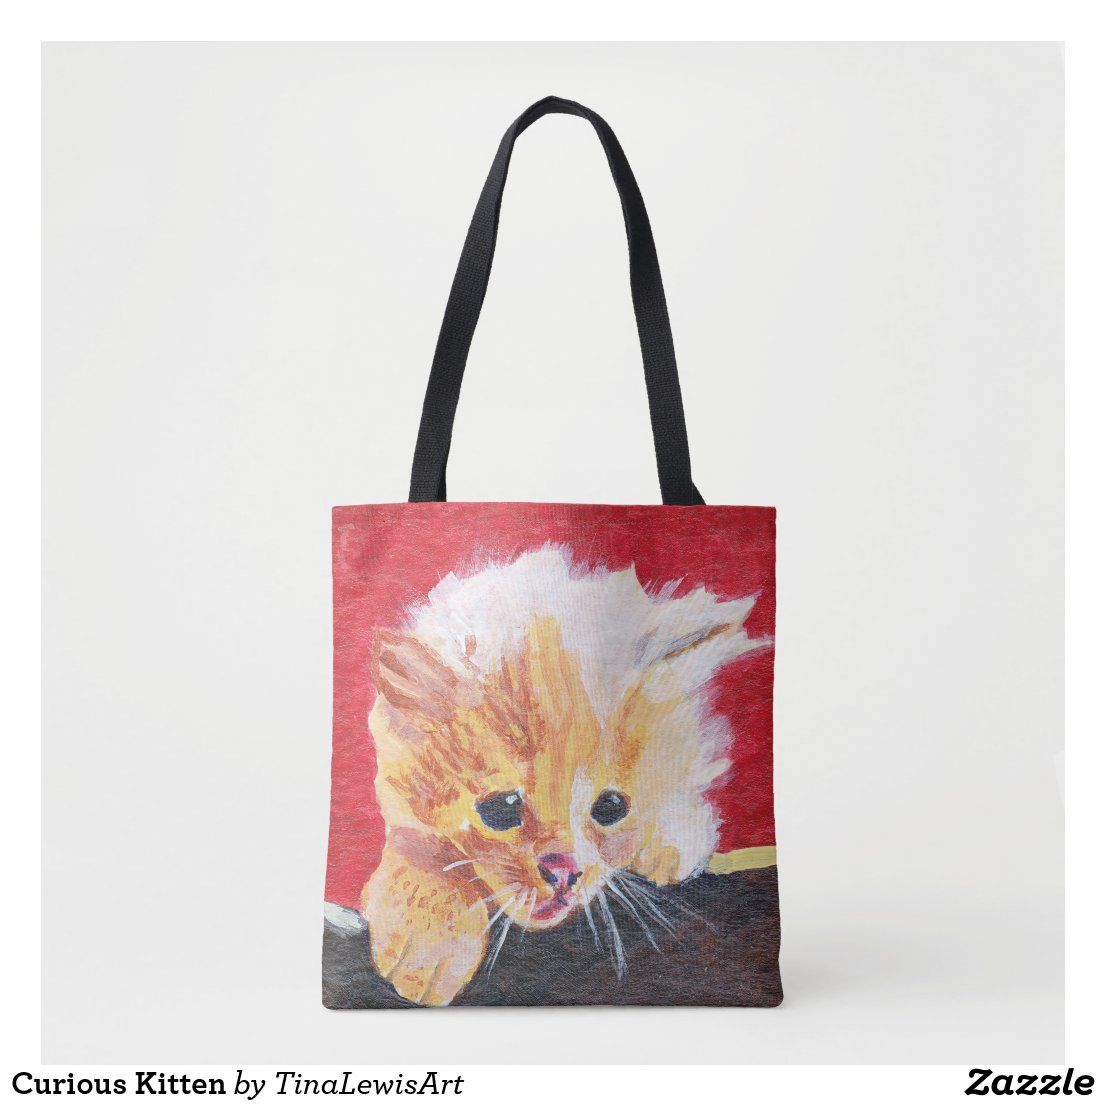 Curious Kitten Tote Bag Zazzle Com In 2020 Tabby Kitten Orange Tabby Kitten Orange Kittens